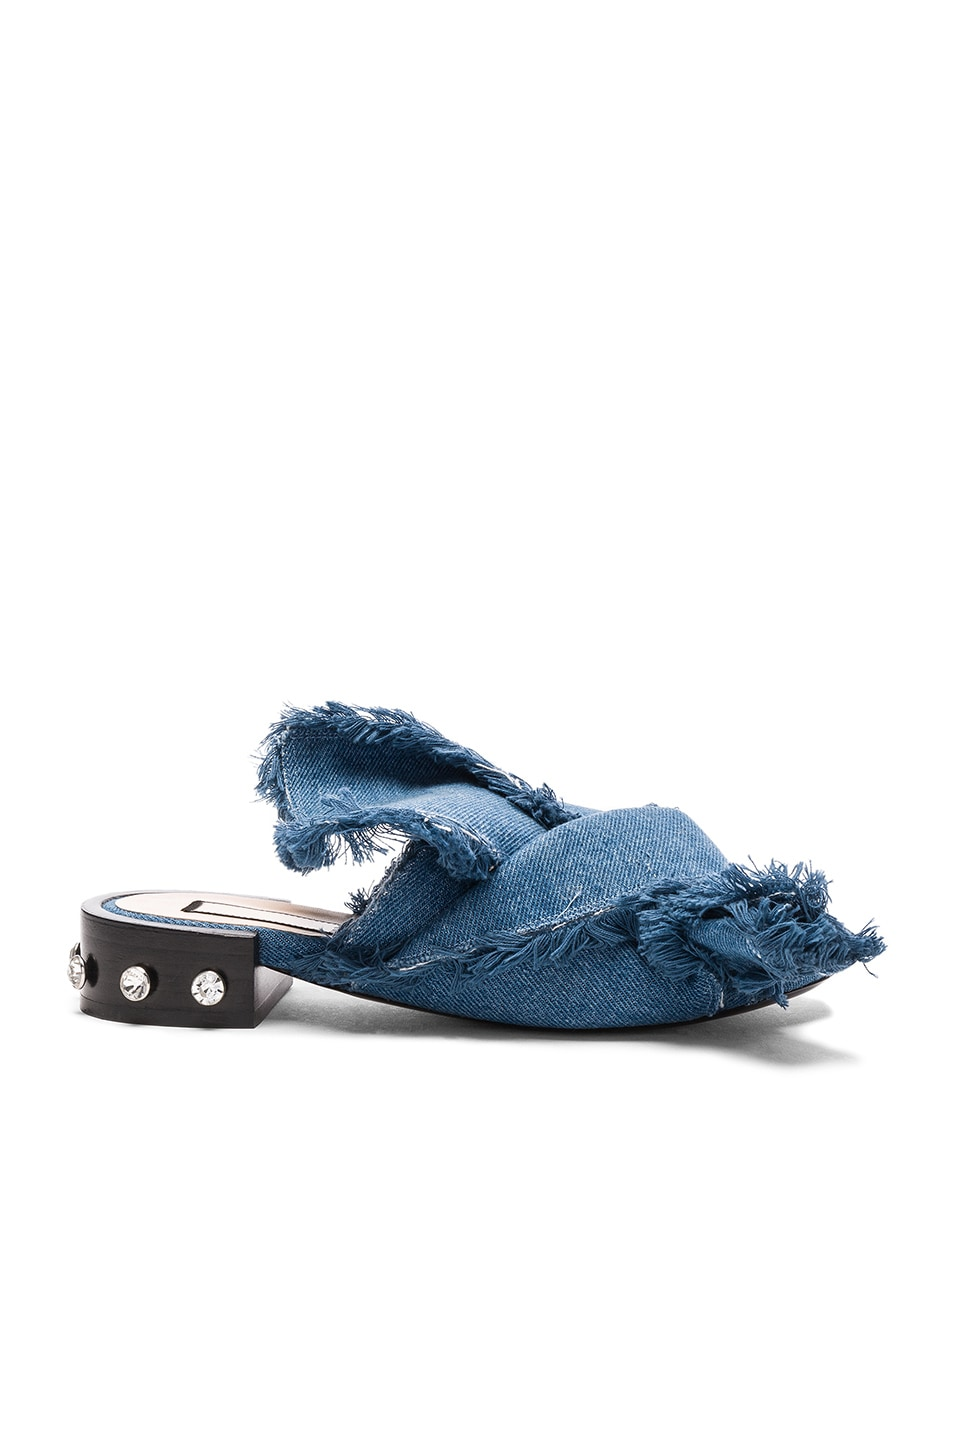 Image 1 of No. 21 Bow Denim Mules in Denim Blue